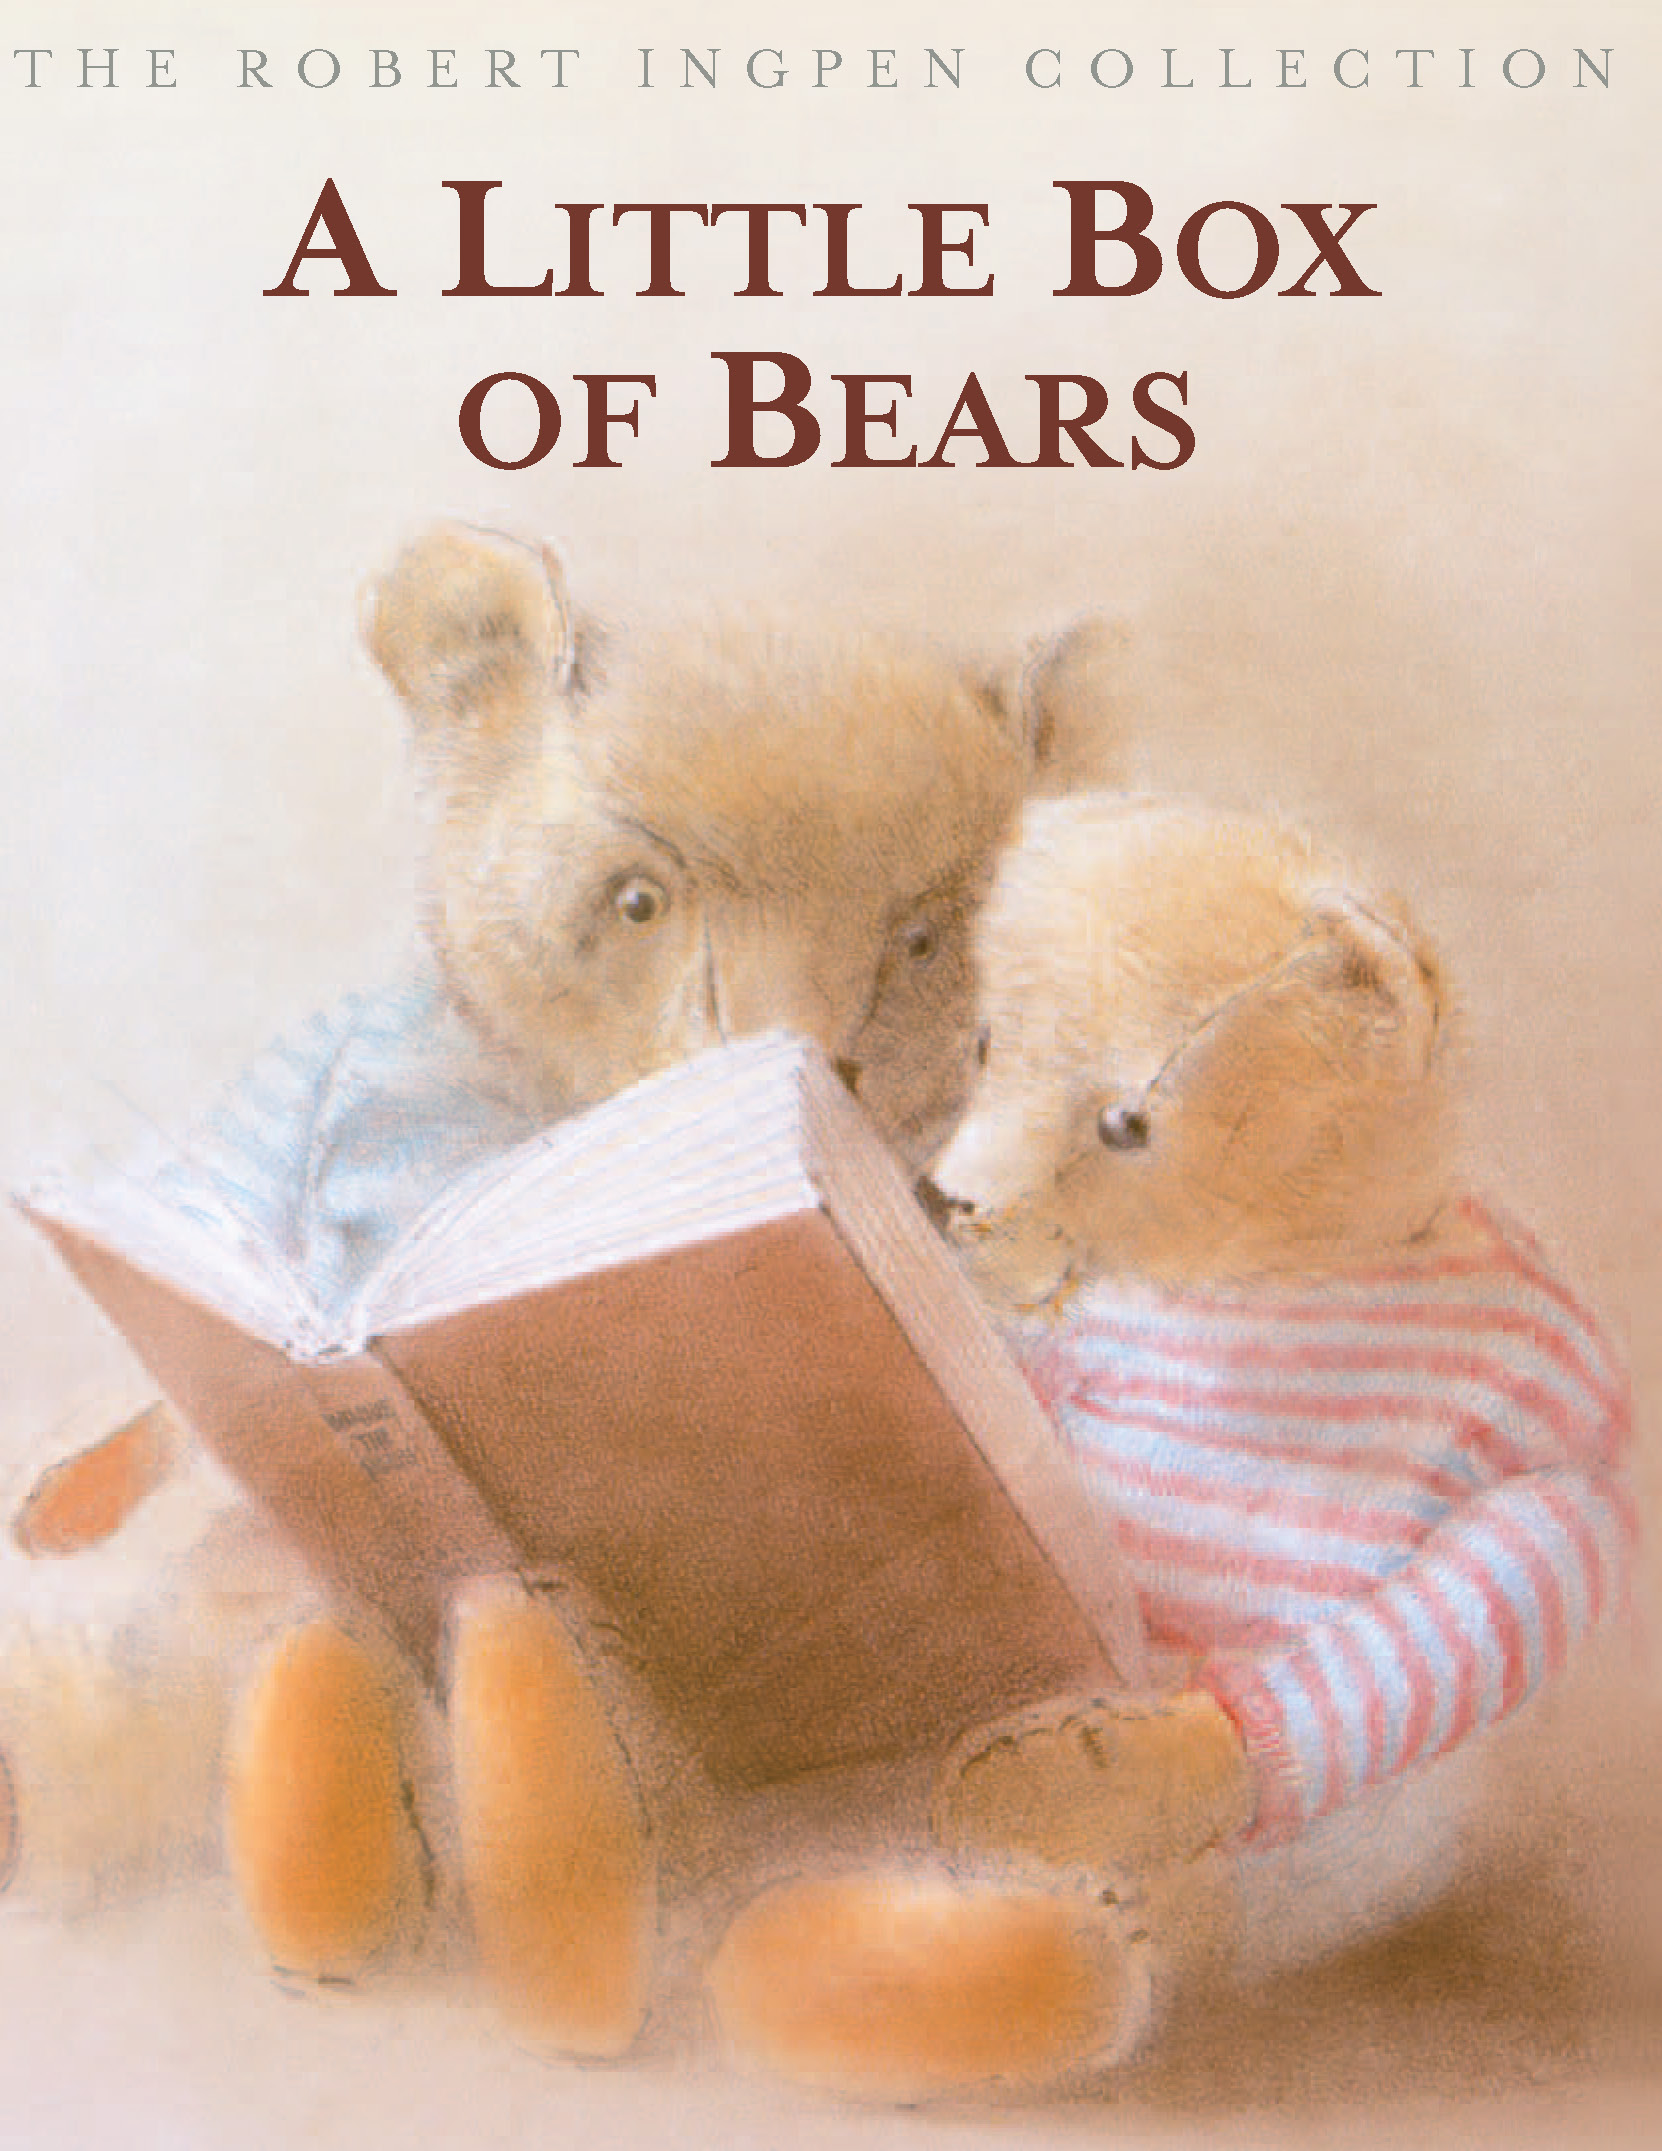 A Little Box of Bears